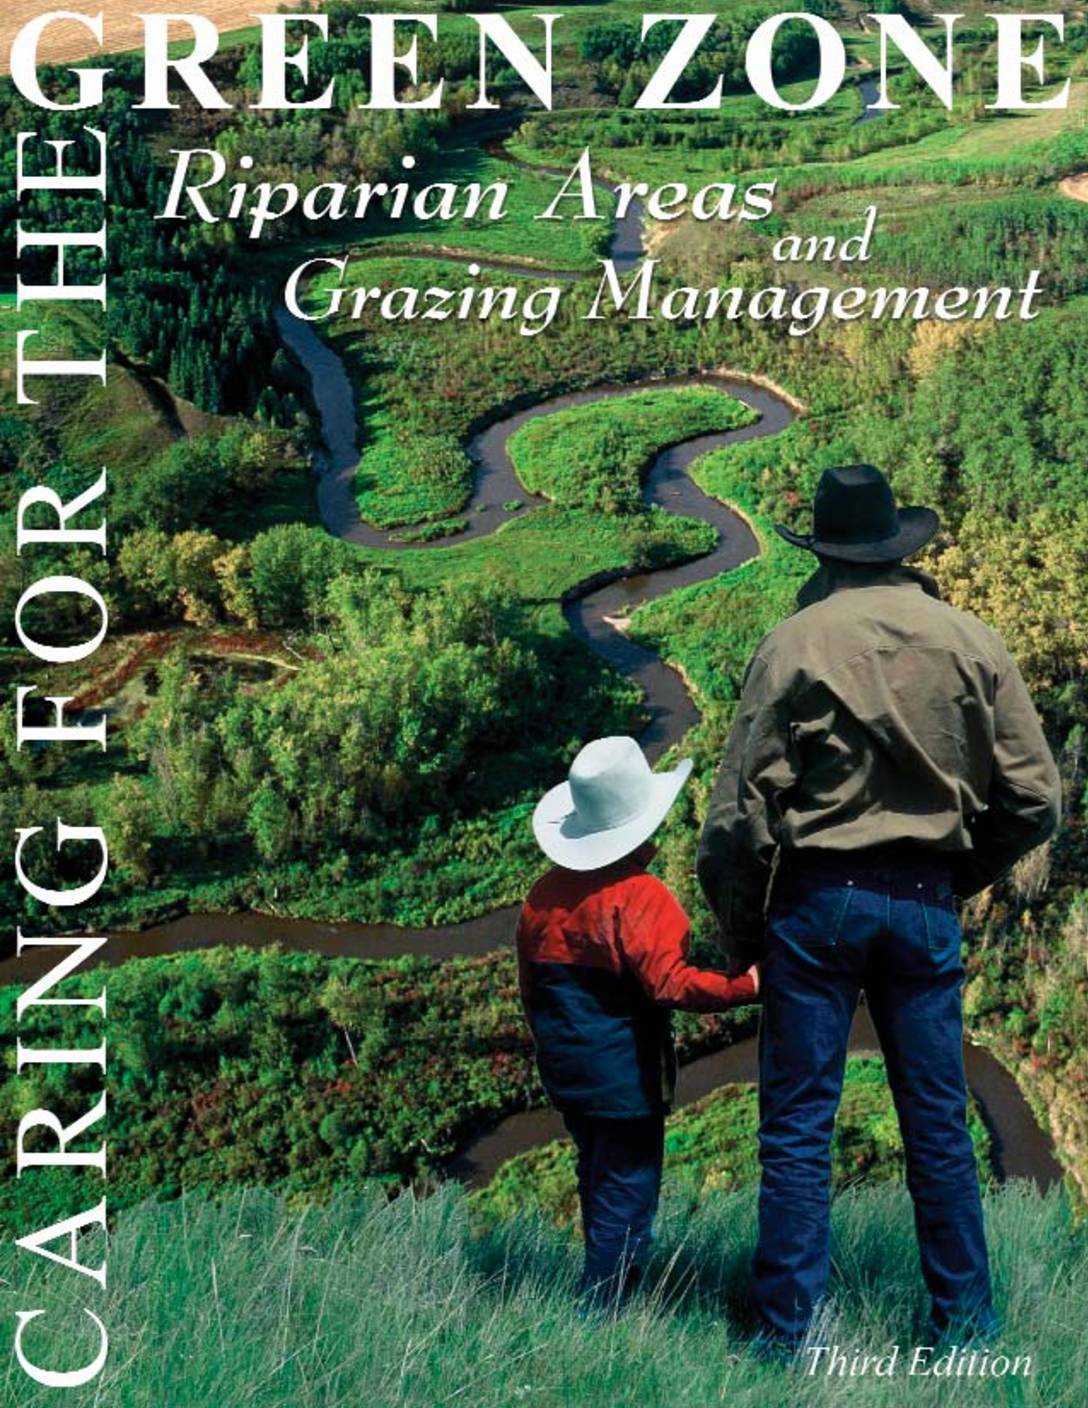 Riparian Areas: Caring for the Green Zone – Riparian Areas and Grazing Management